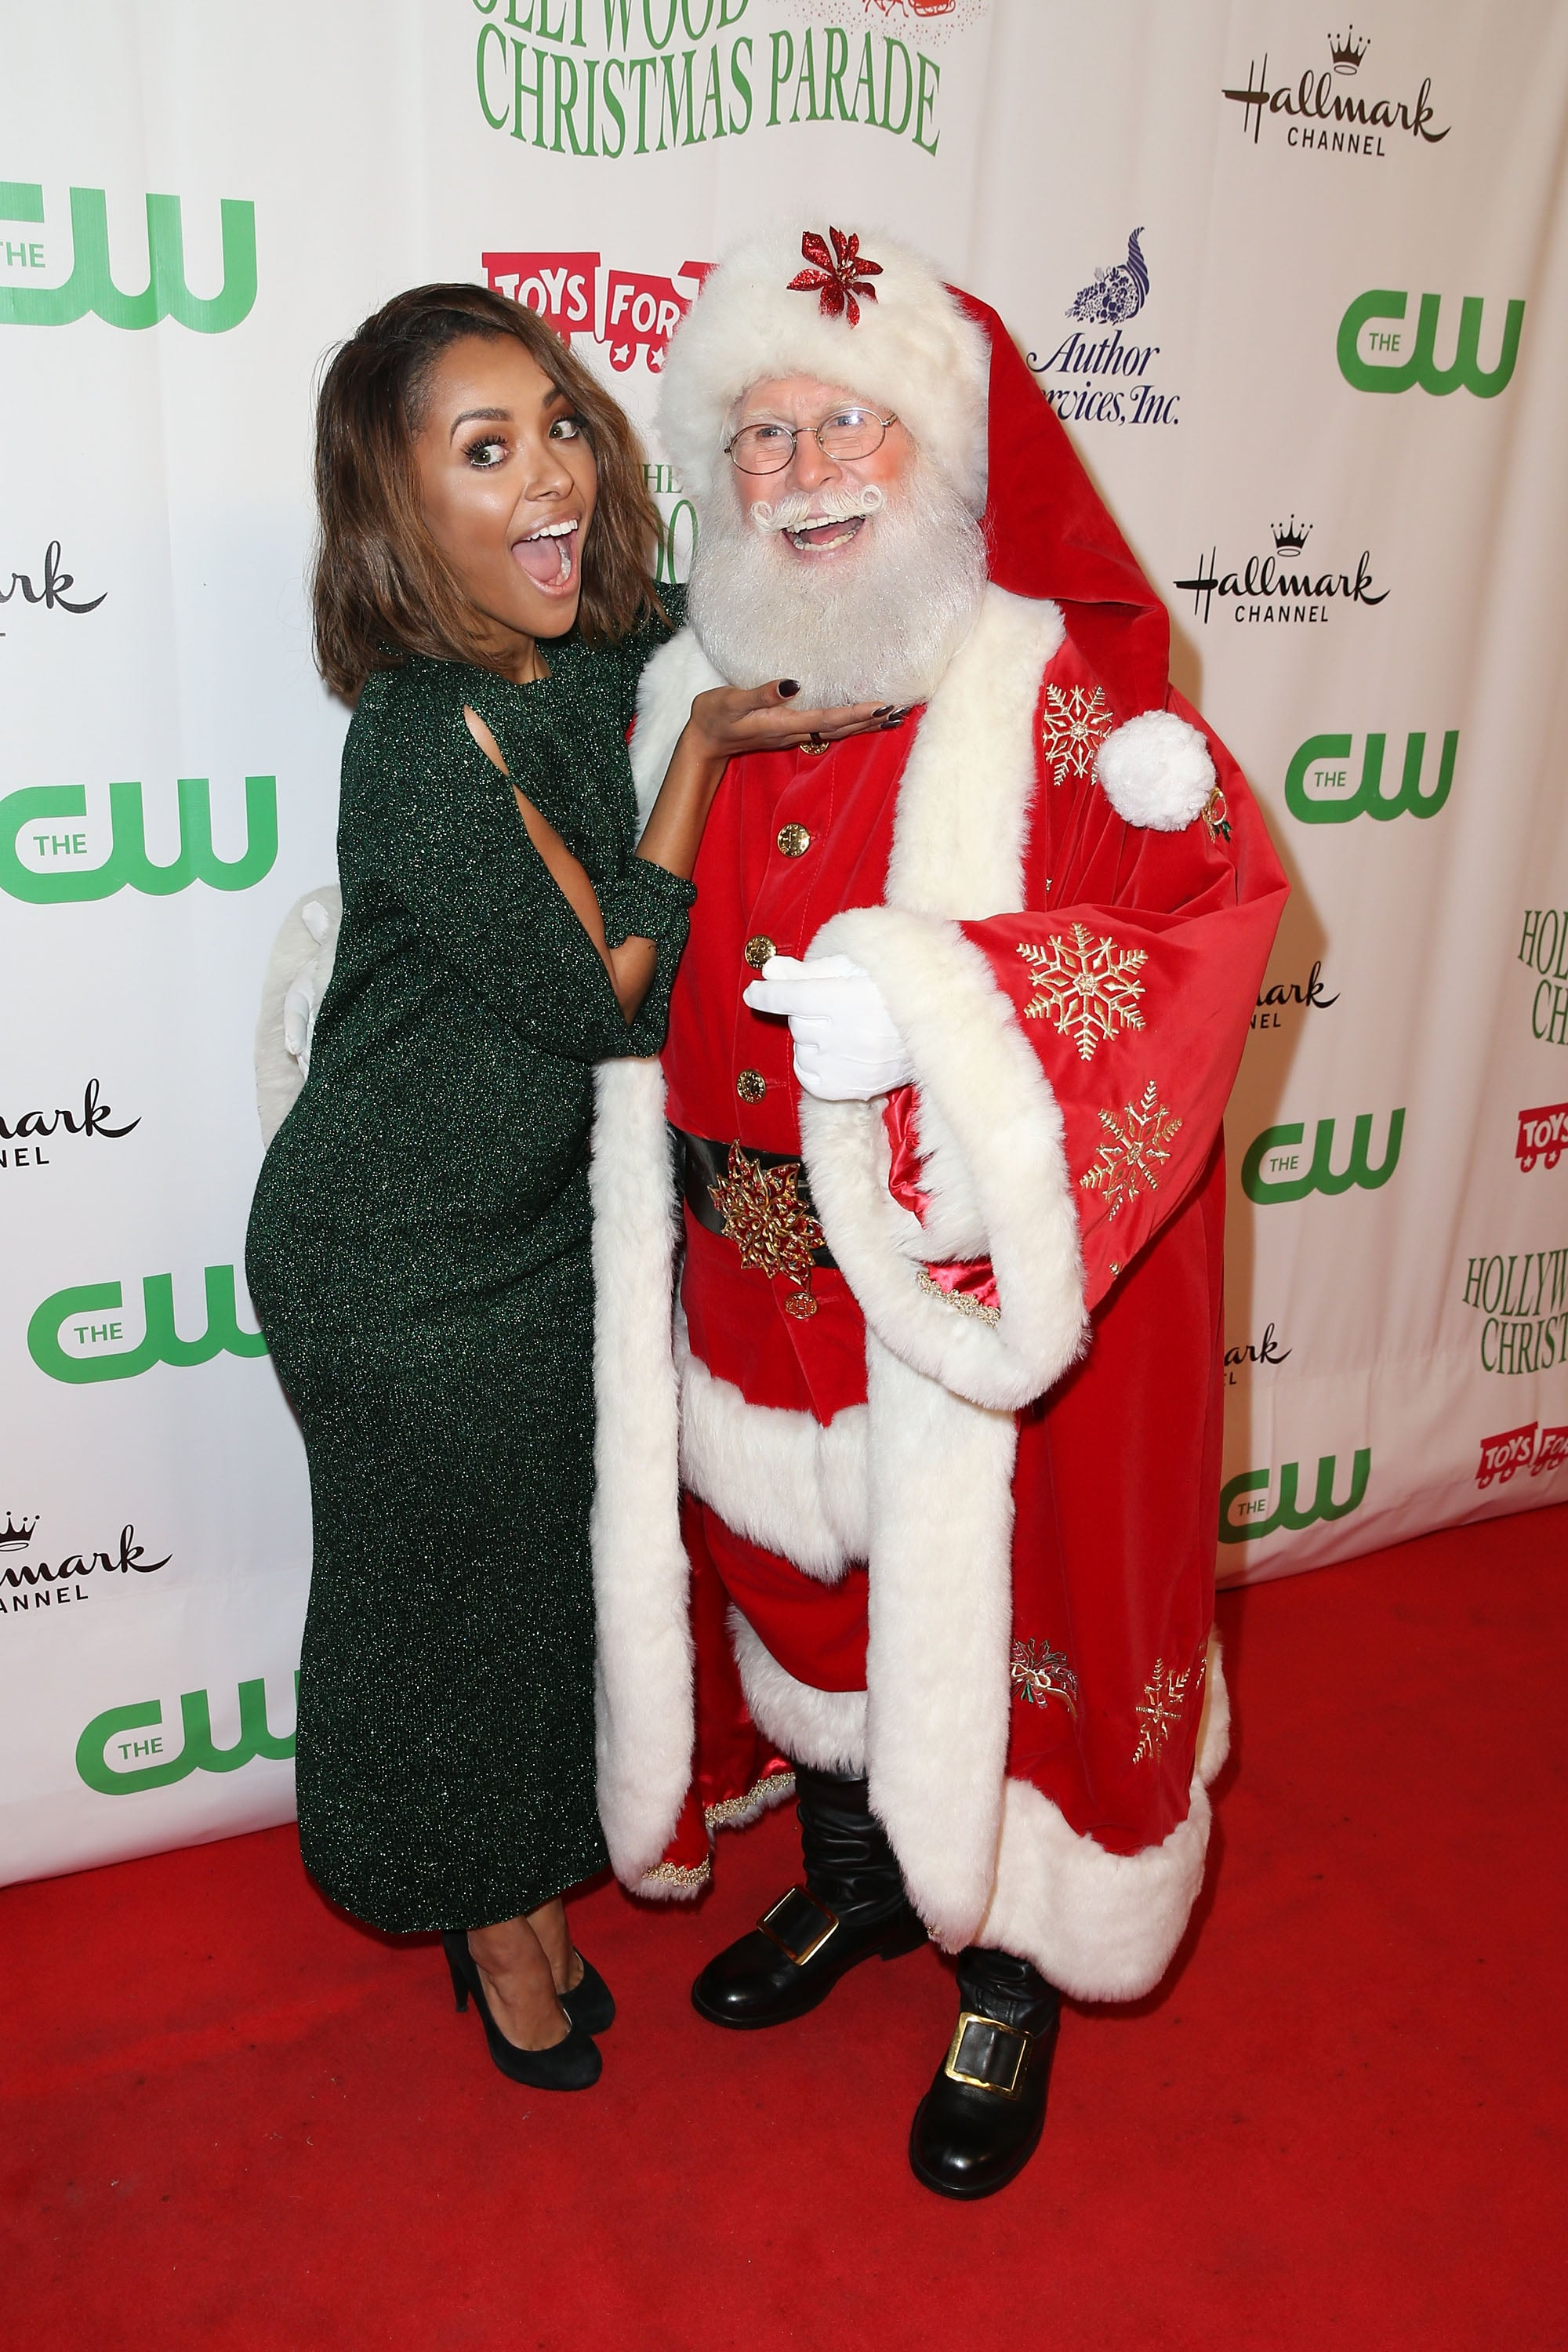 The Christmas Parade Hallmark.Kat Graham Got Silly With Santa Claus At The 84th Annual